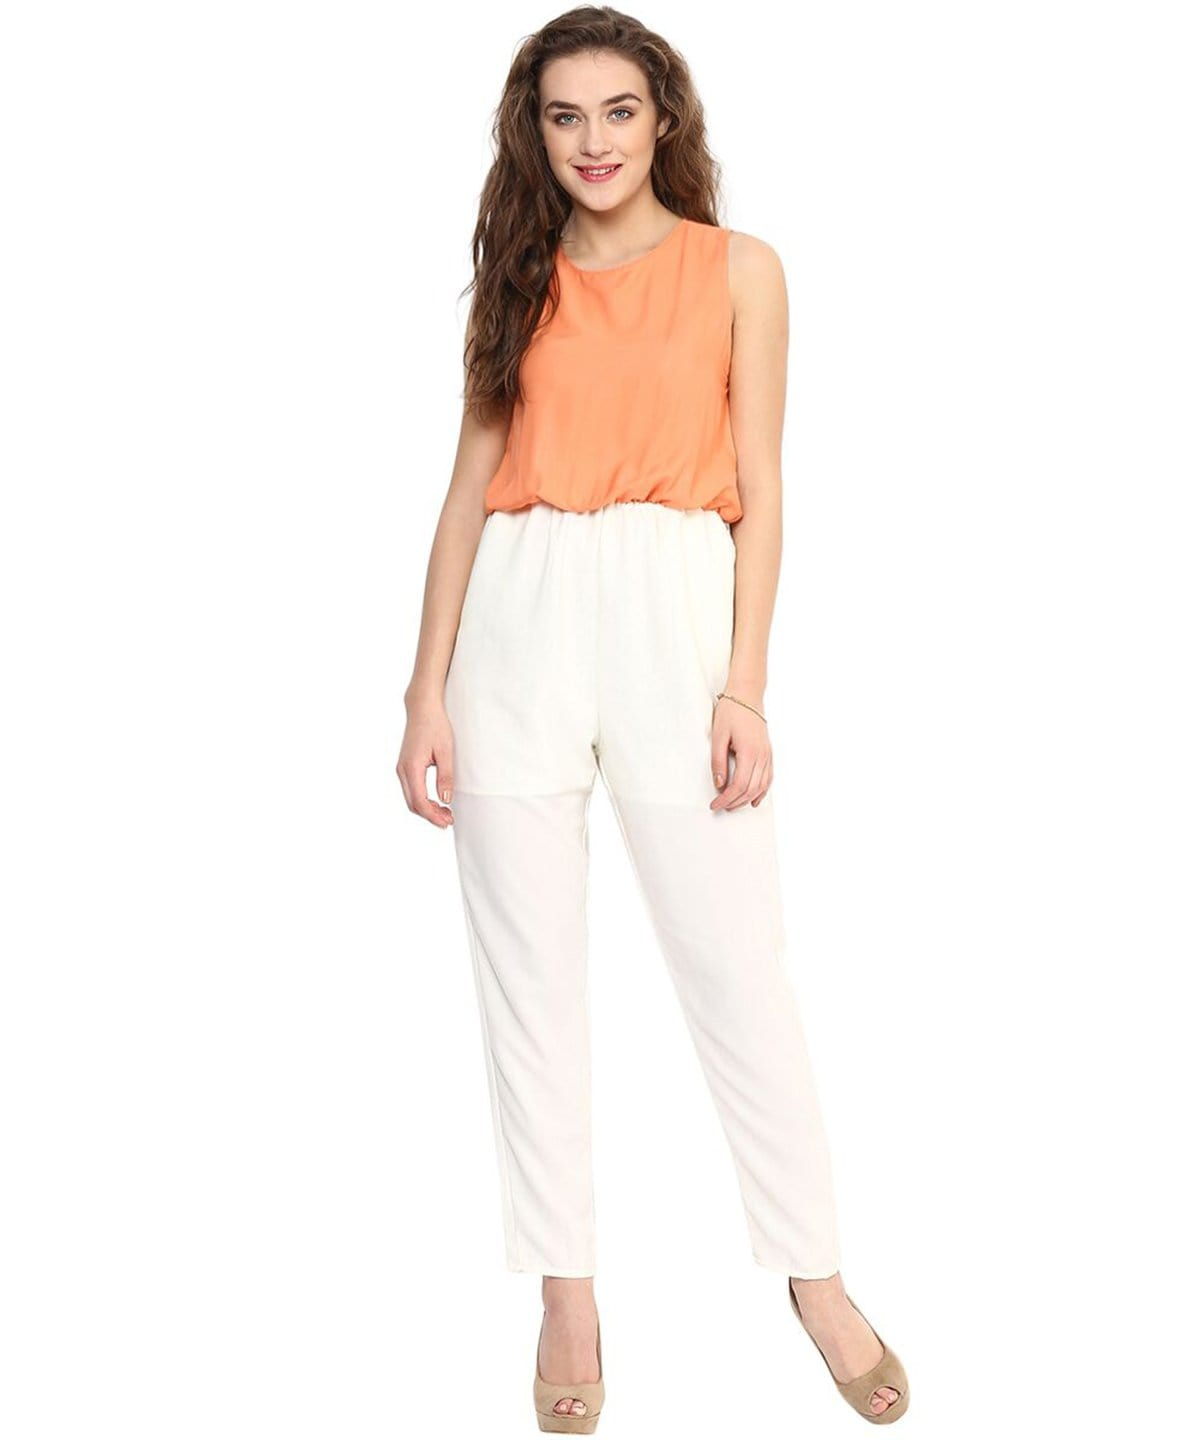 Orange White Solid Jumpsuit. BUY 1 GET 3